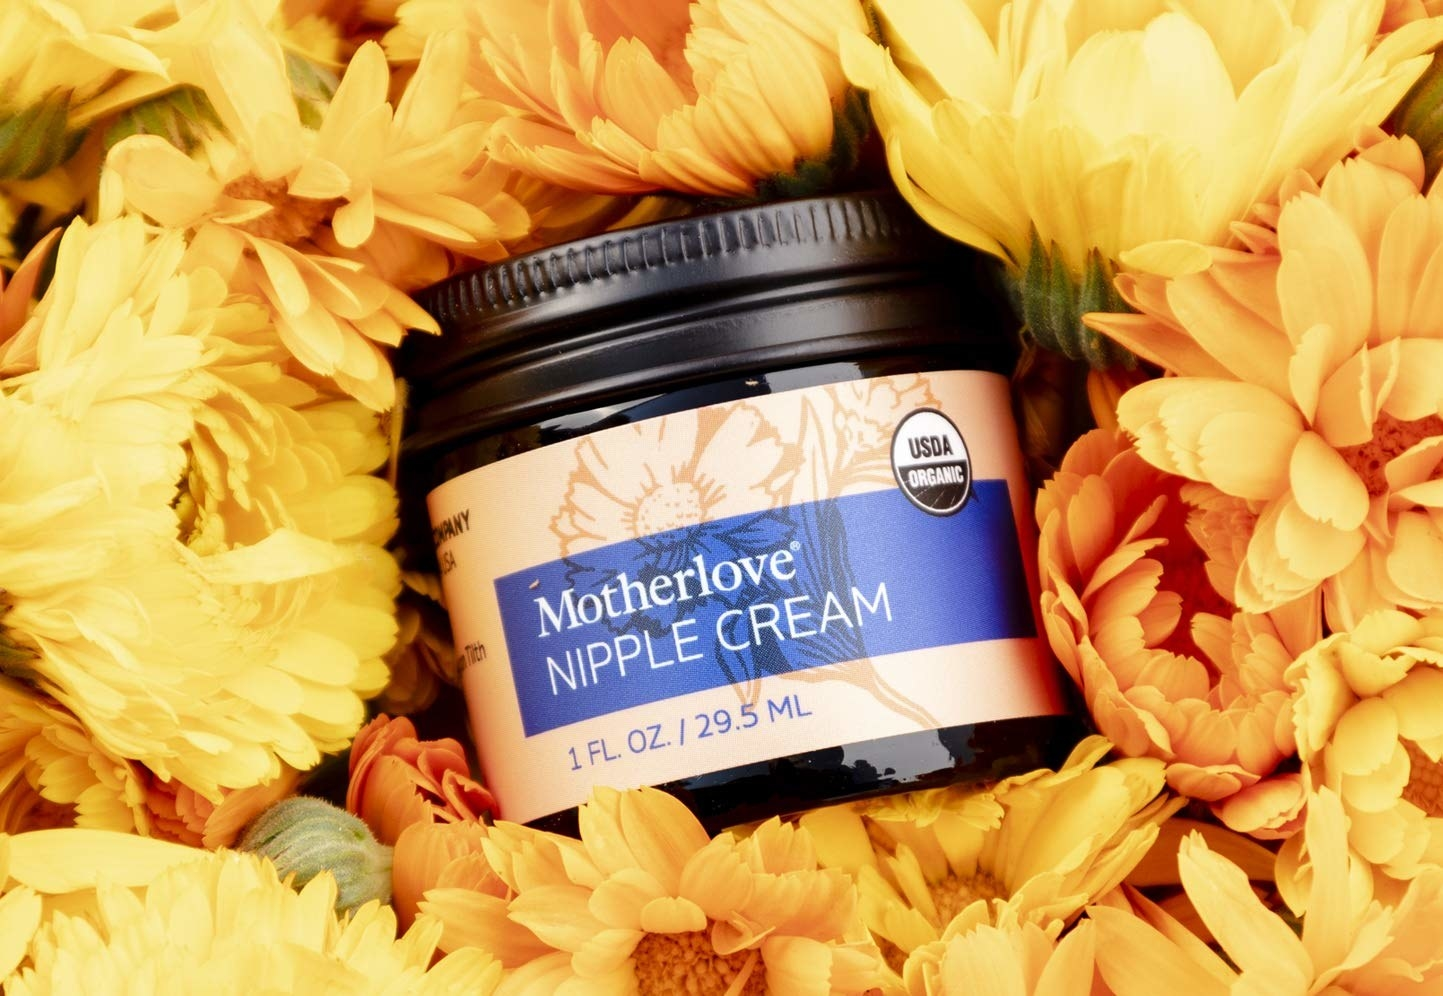 jar of Motherlove nipple cream surrounded by yellow flowers